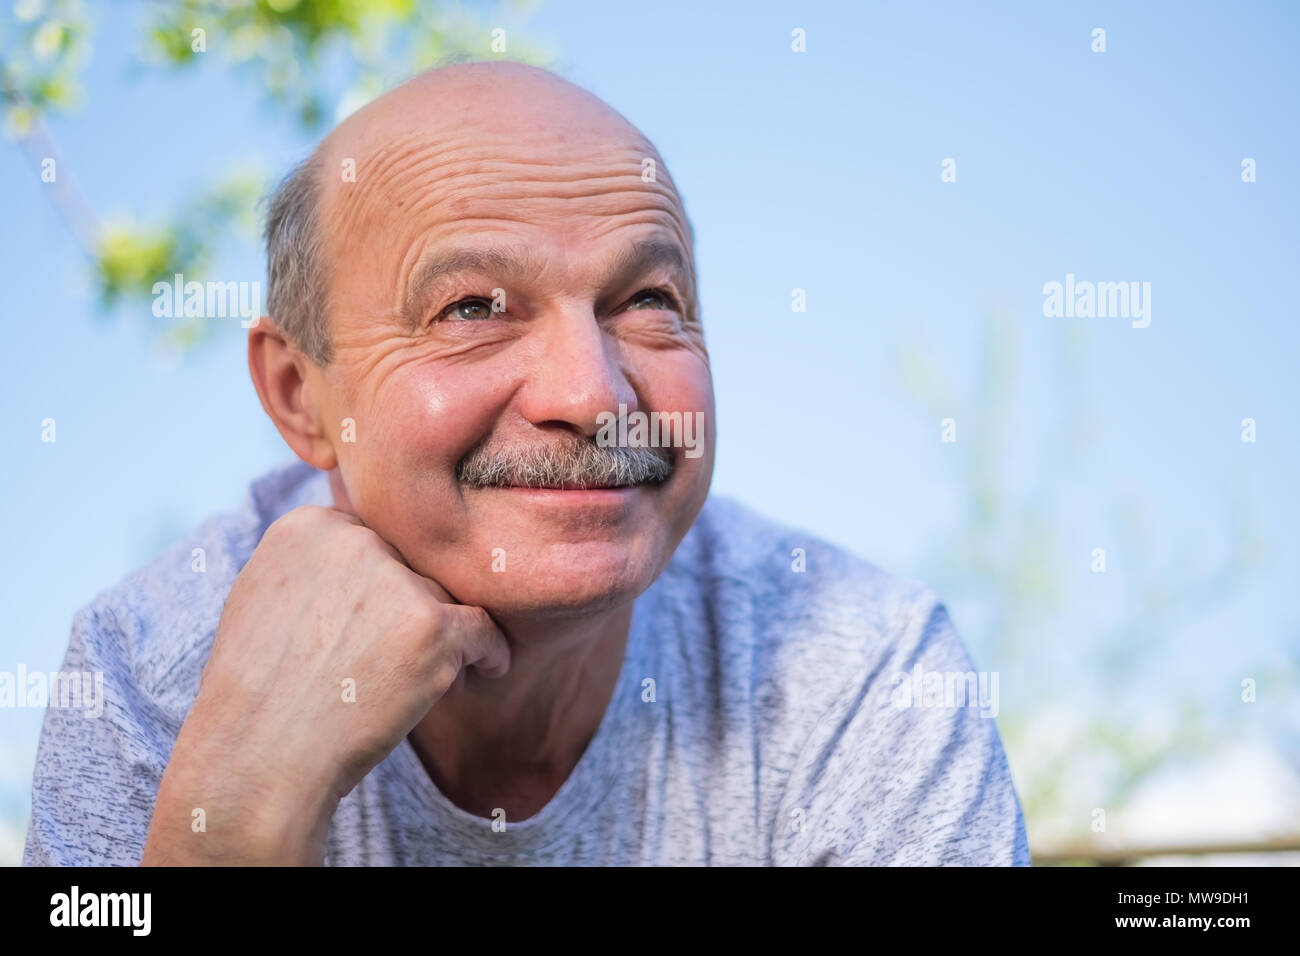 A man resting outdoor on sunny summer day. - Stock Image